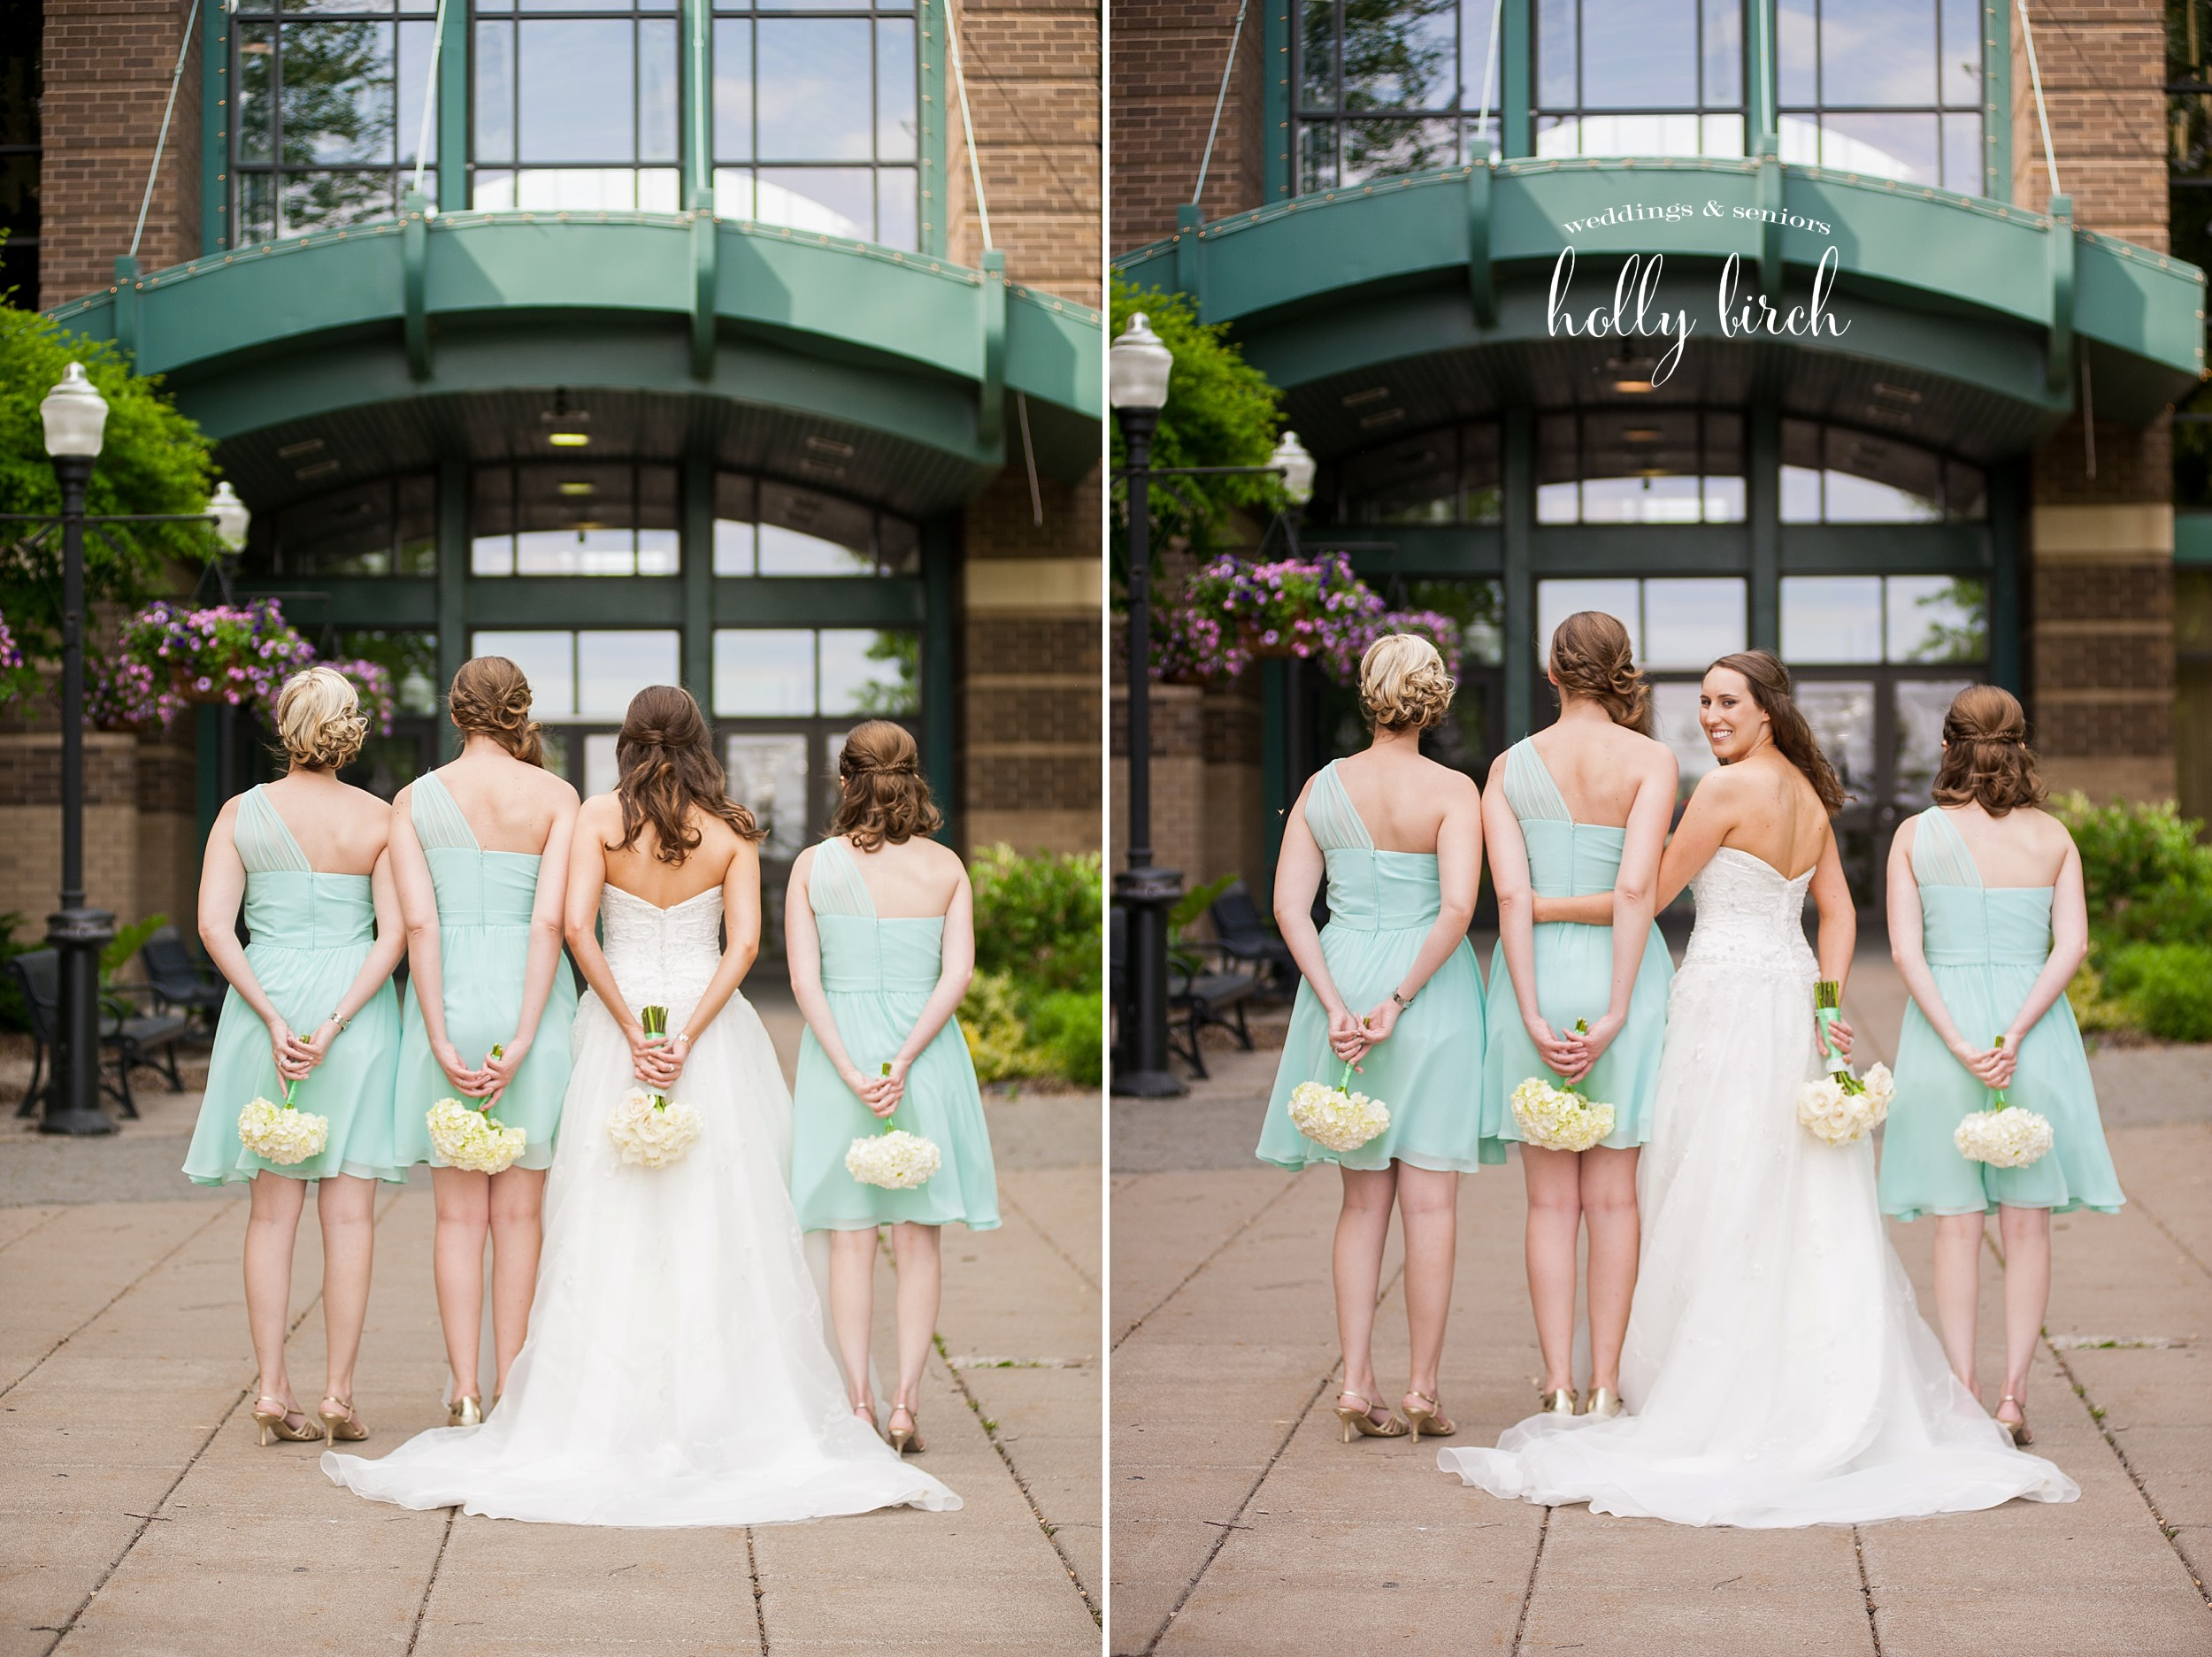 mint bridesmaid dresses with white bouquets